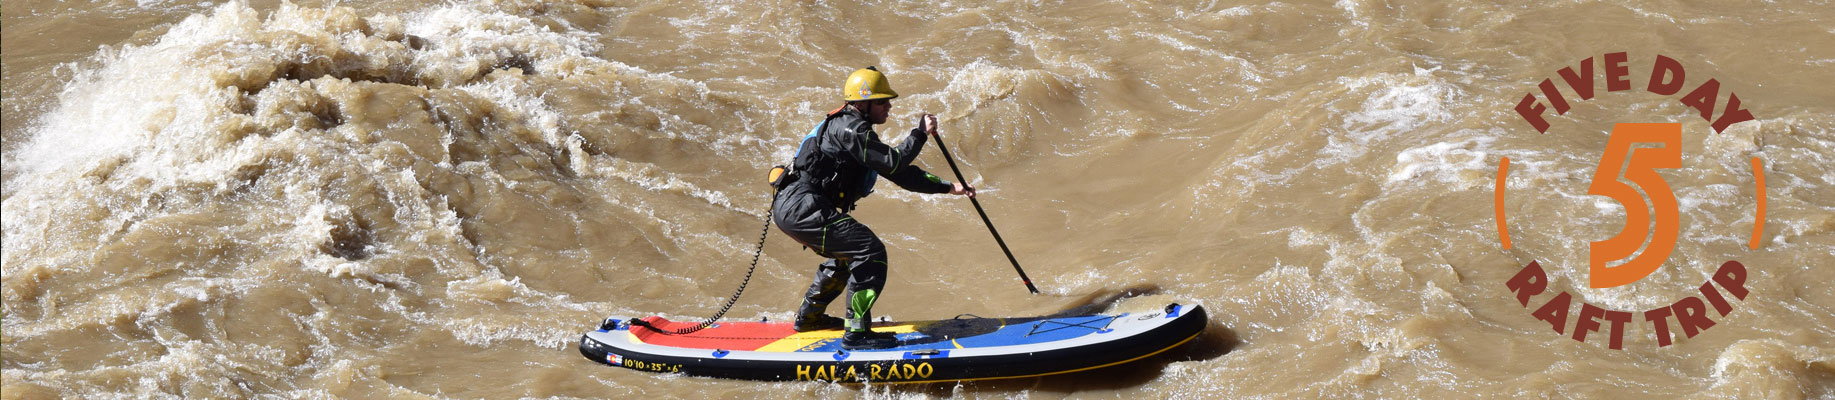 Yampa River SUP Multi Day Featuring Charlie MacArthur-photo